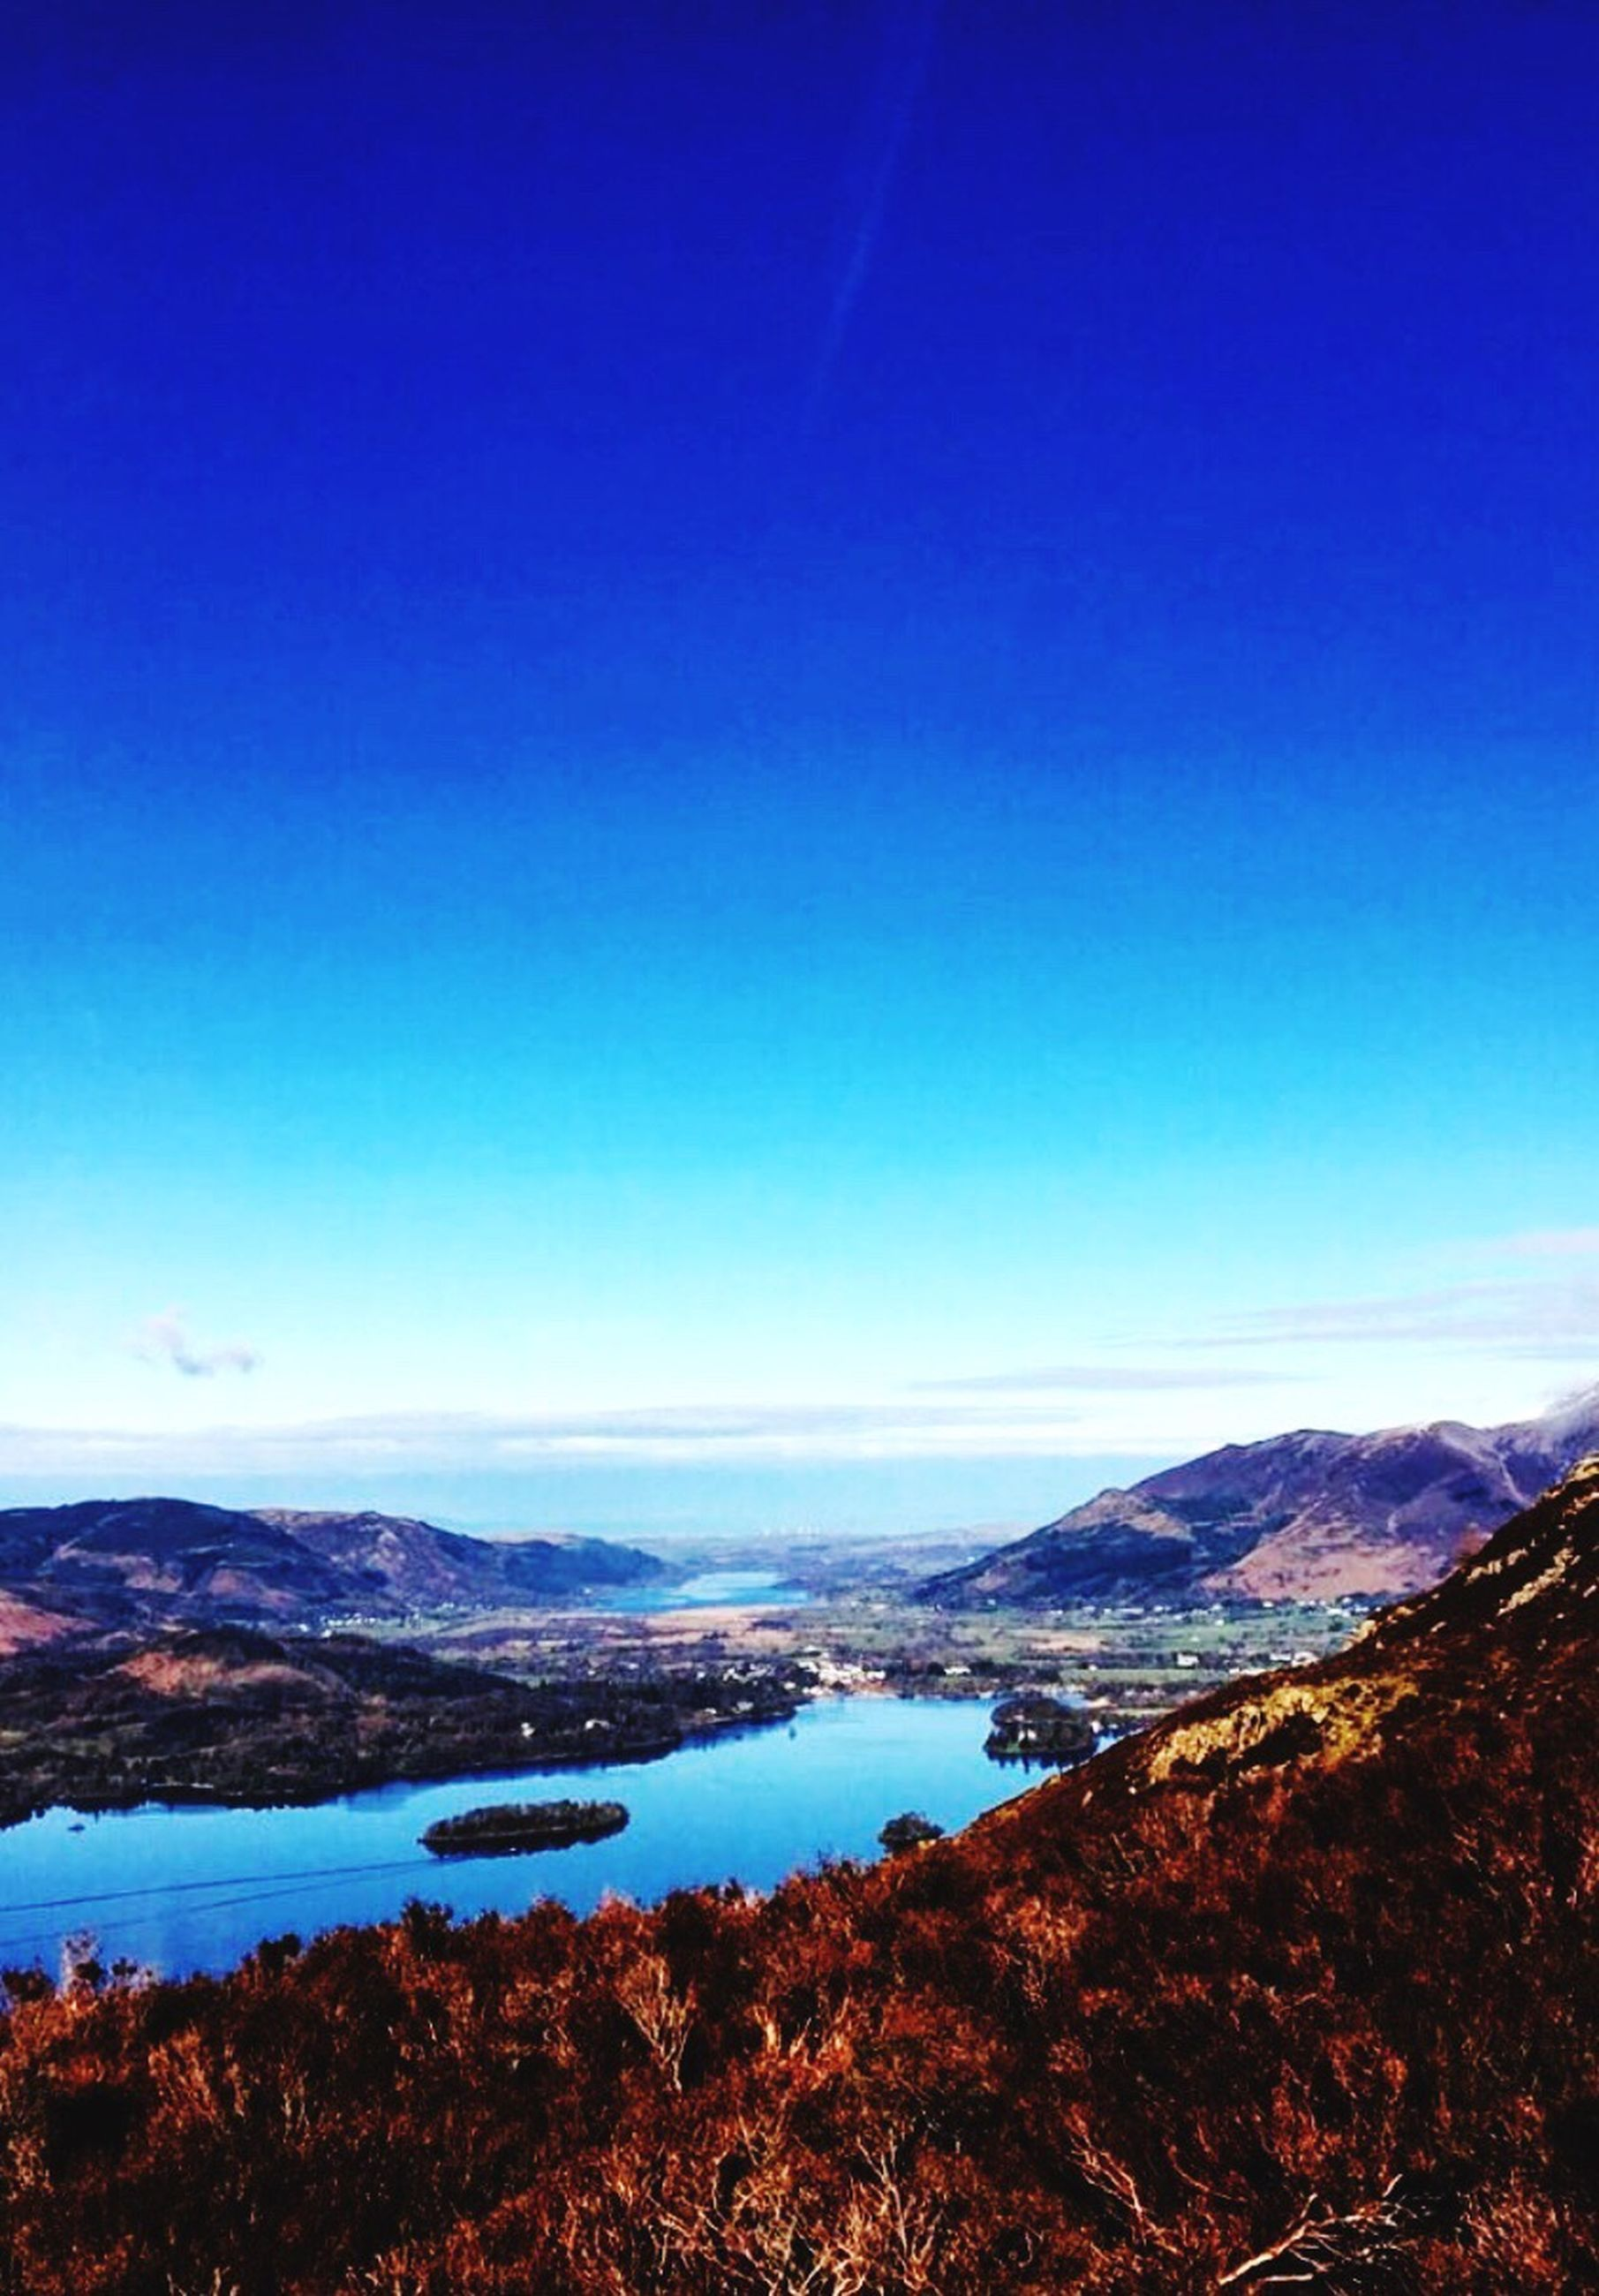 mountain, blue, scenics, tranquil scene, tranquility, water, clear sky, beauty in nature, copy space, mountain range, lake, nature, landscape, idyllic, non-urban scene, outdoors, sky, no people, tree, day